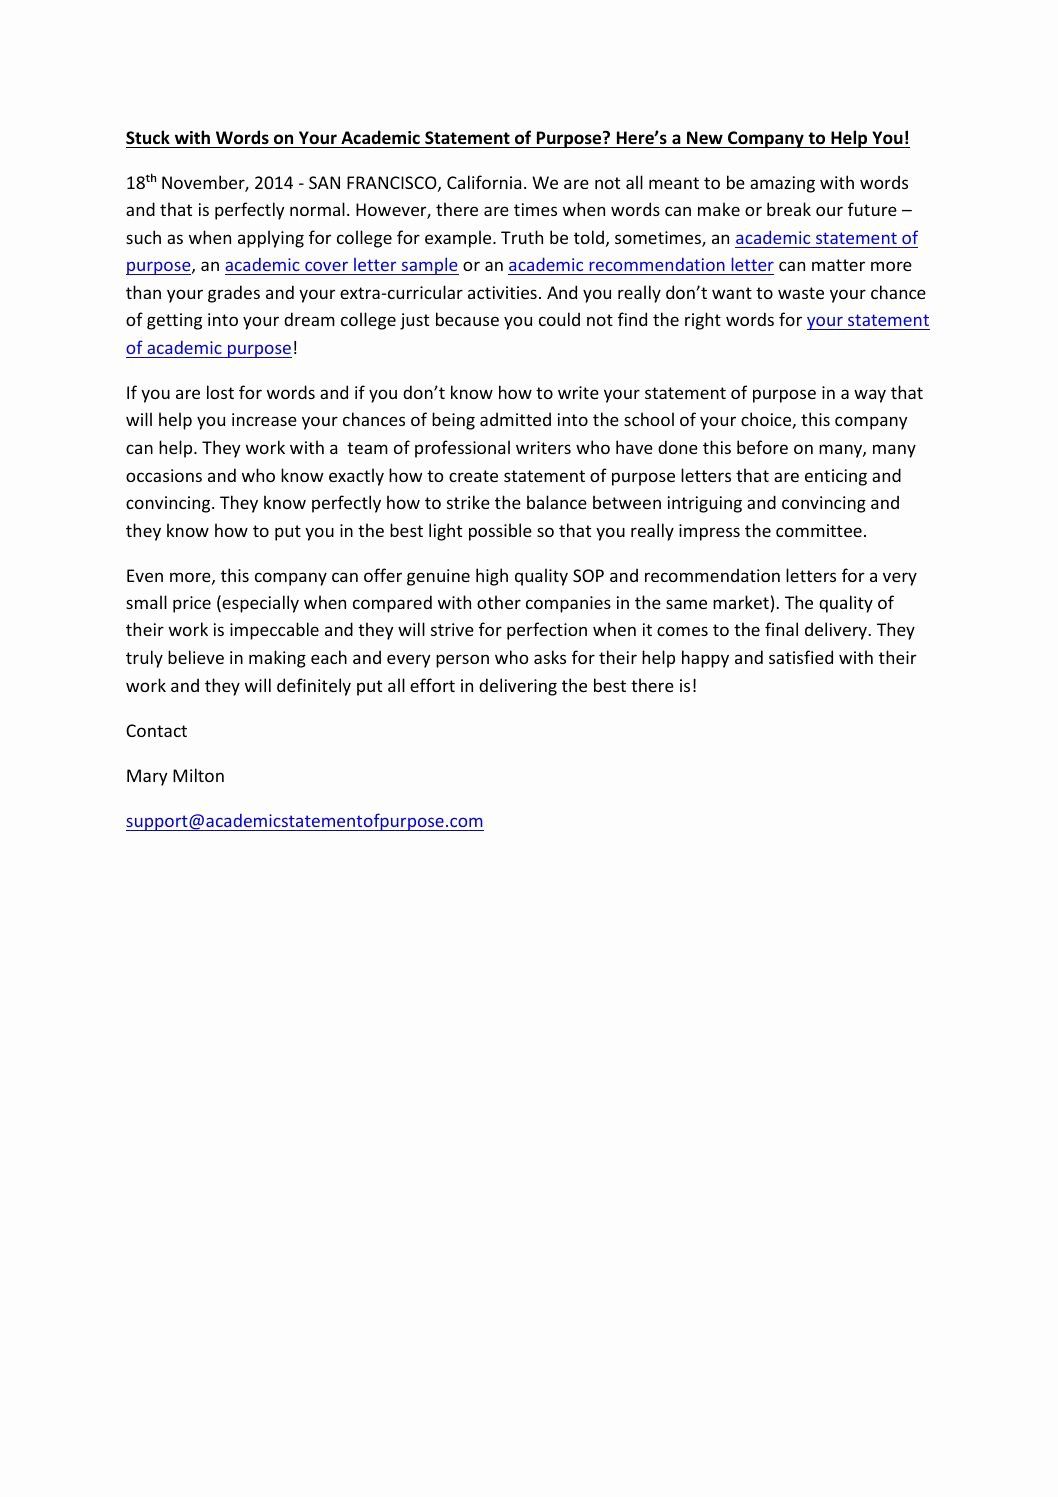 Academic Cover Letter format Beautiful Stuck with Words On Your Academic Statement Of Purpose